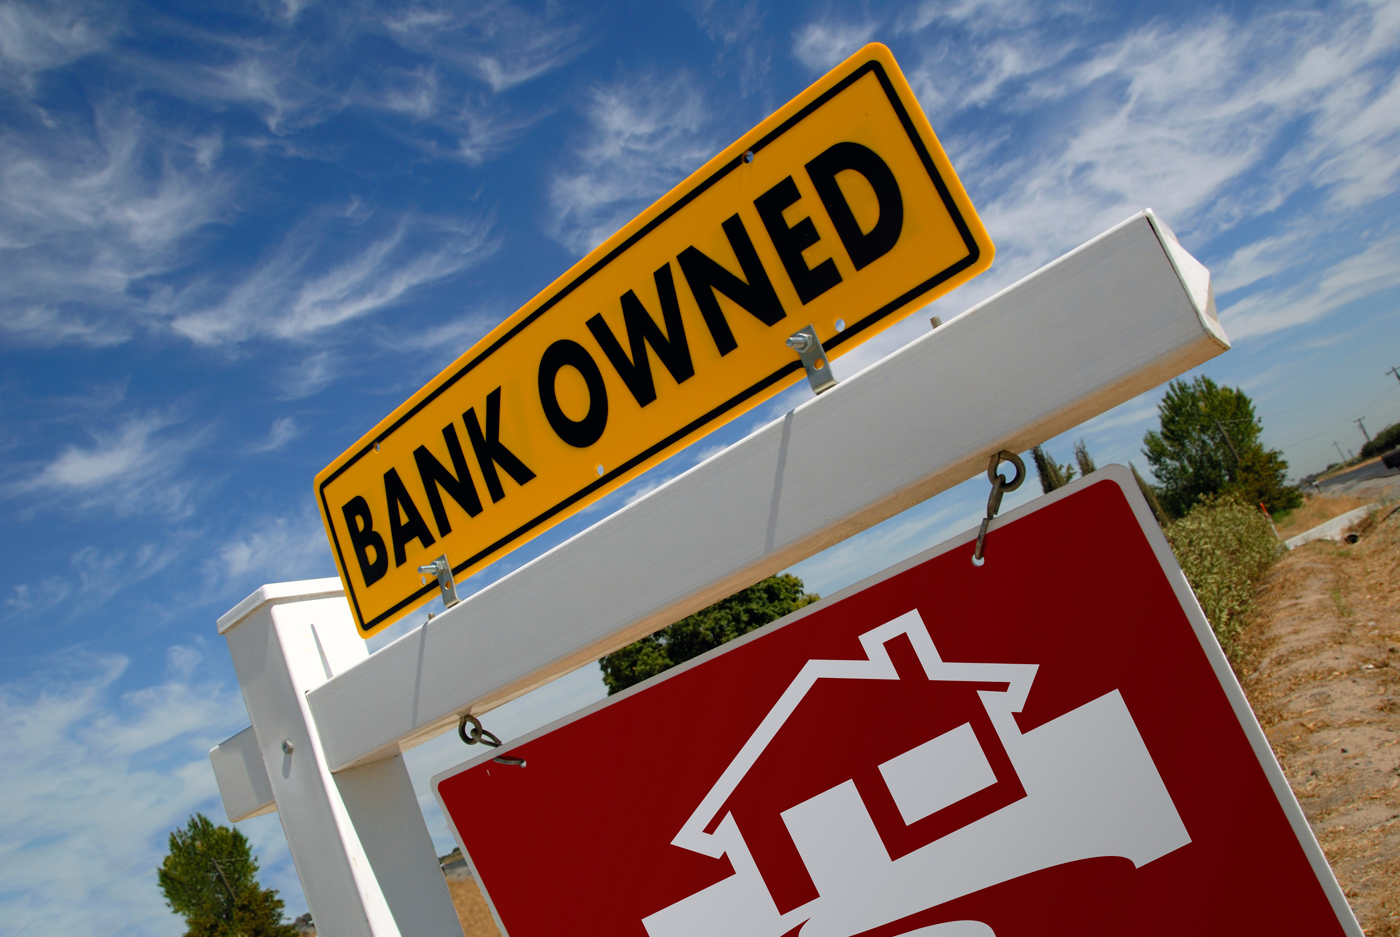 Bank owned homes limit potential for major renovations